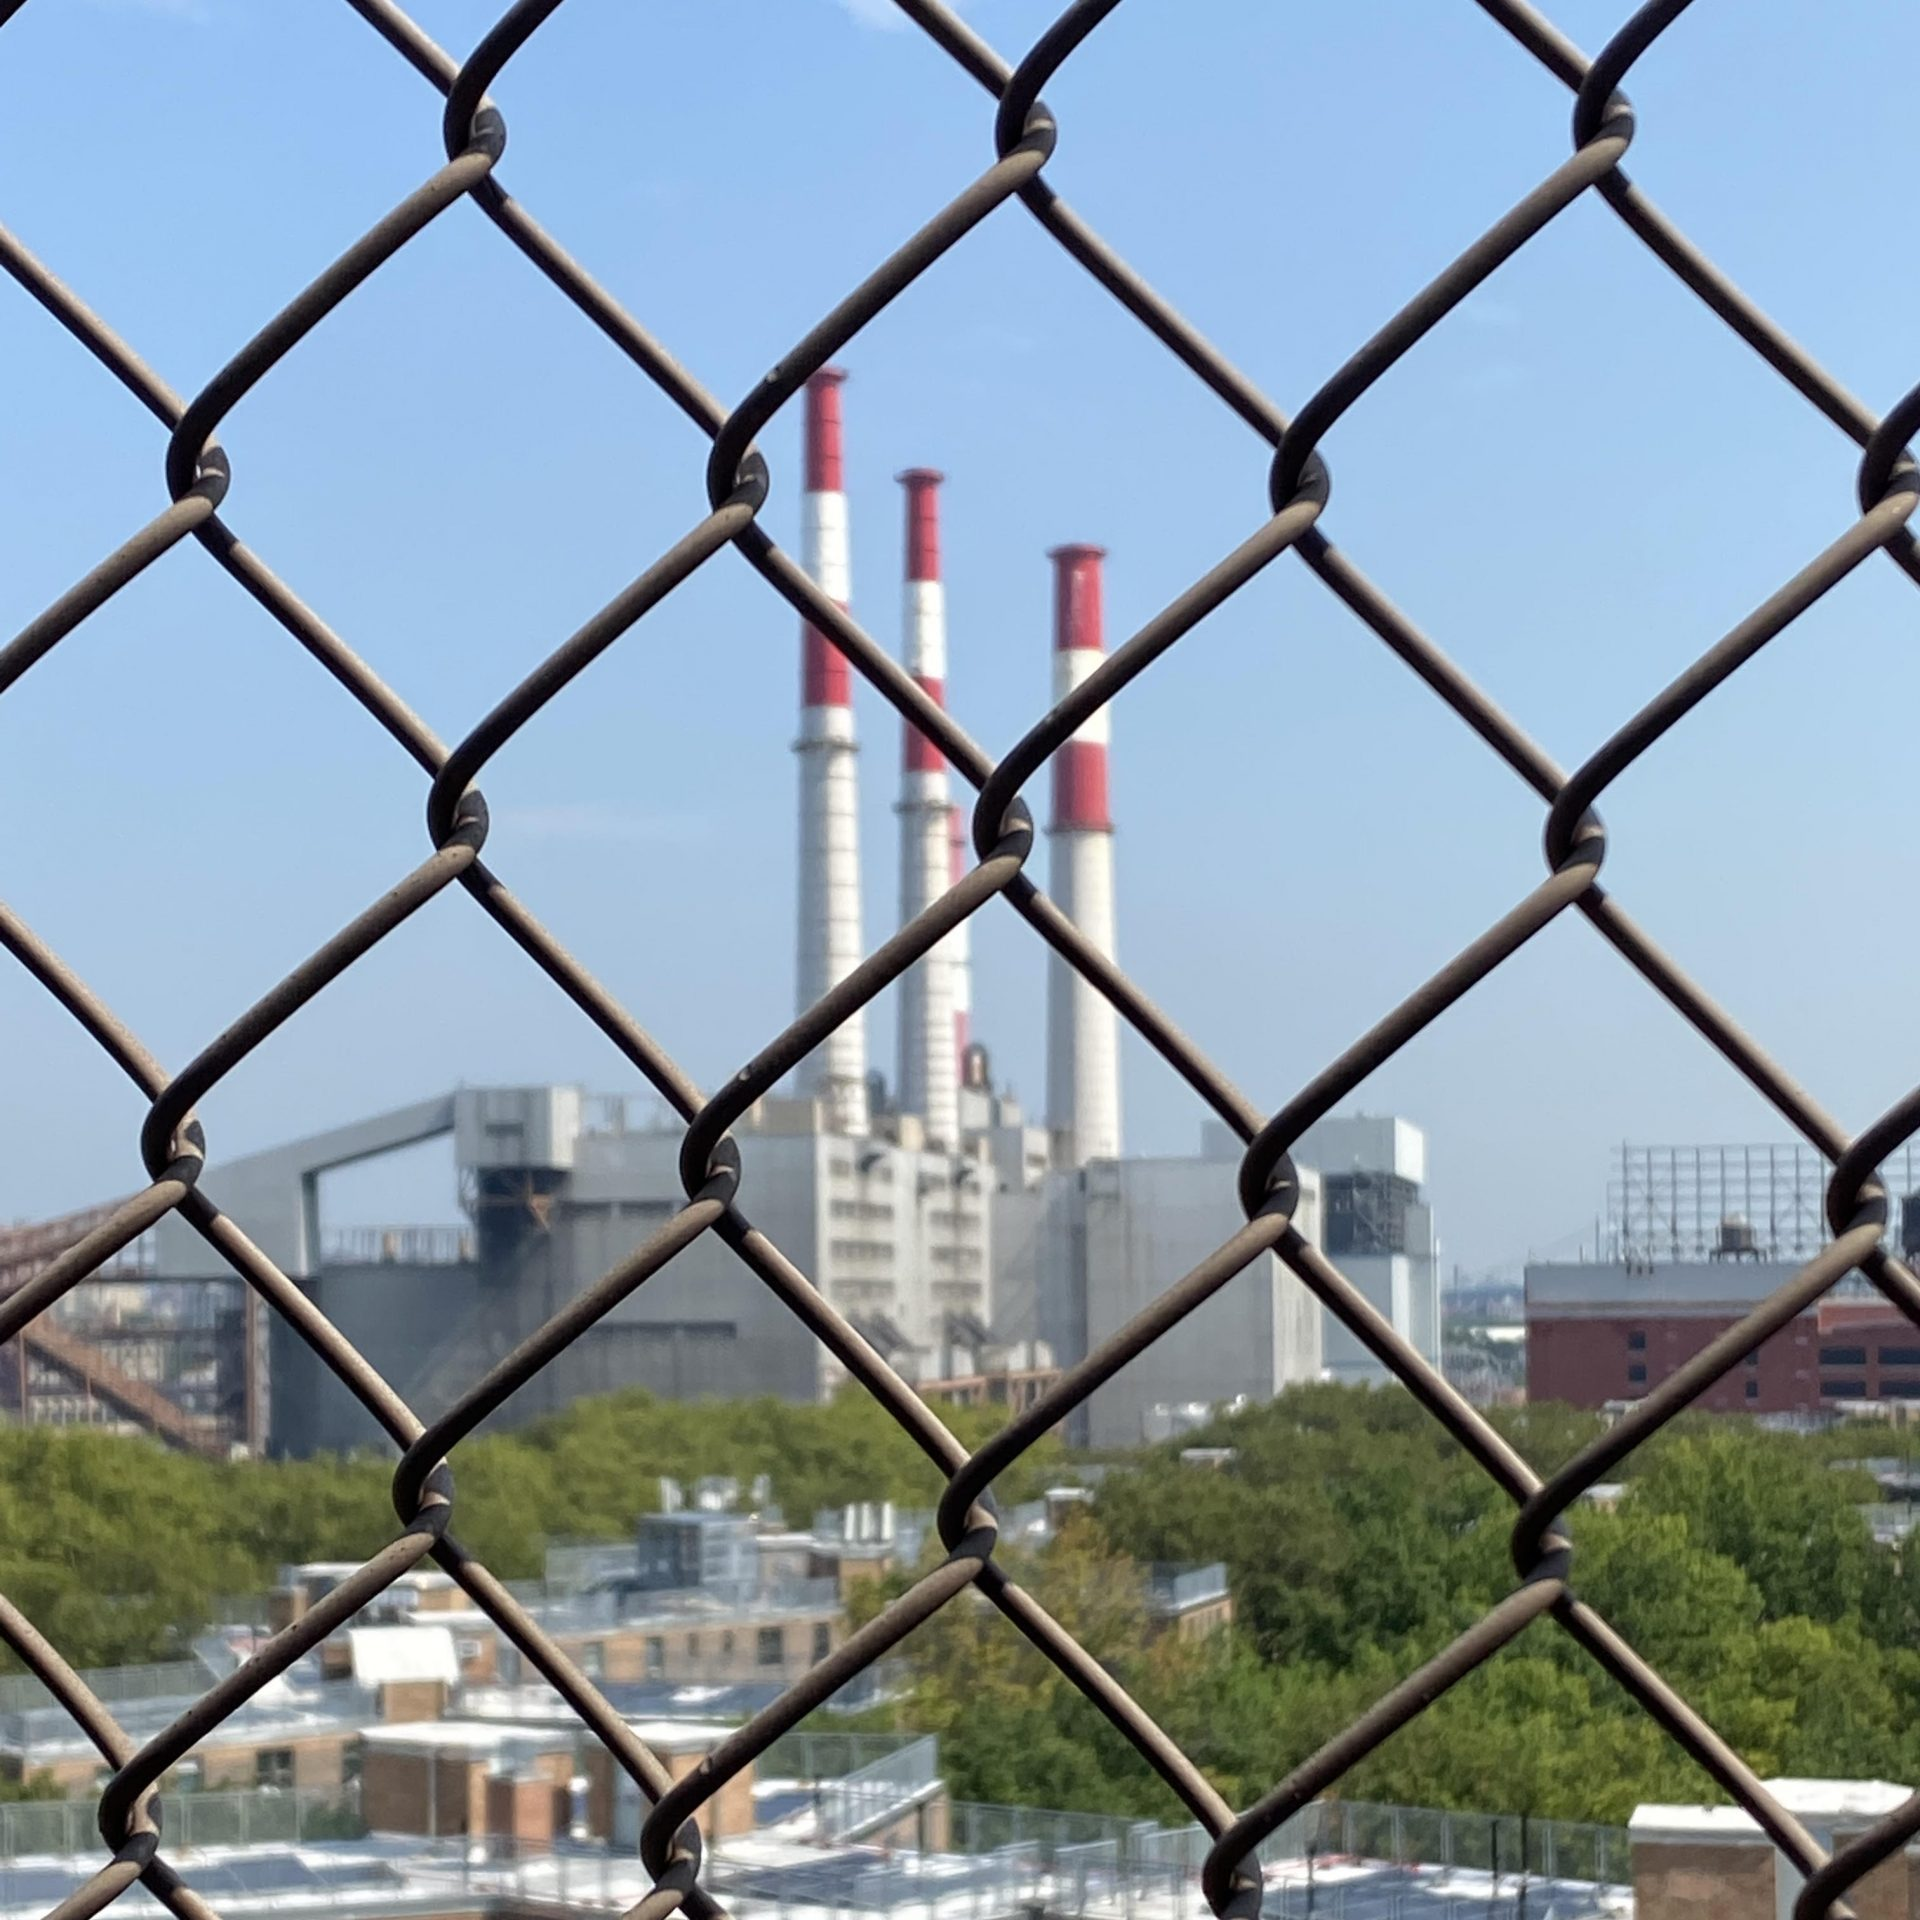 An image of a fossil fuel power plant as viewed through a chain link fence.